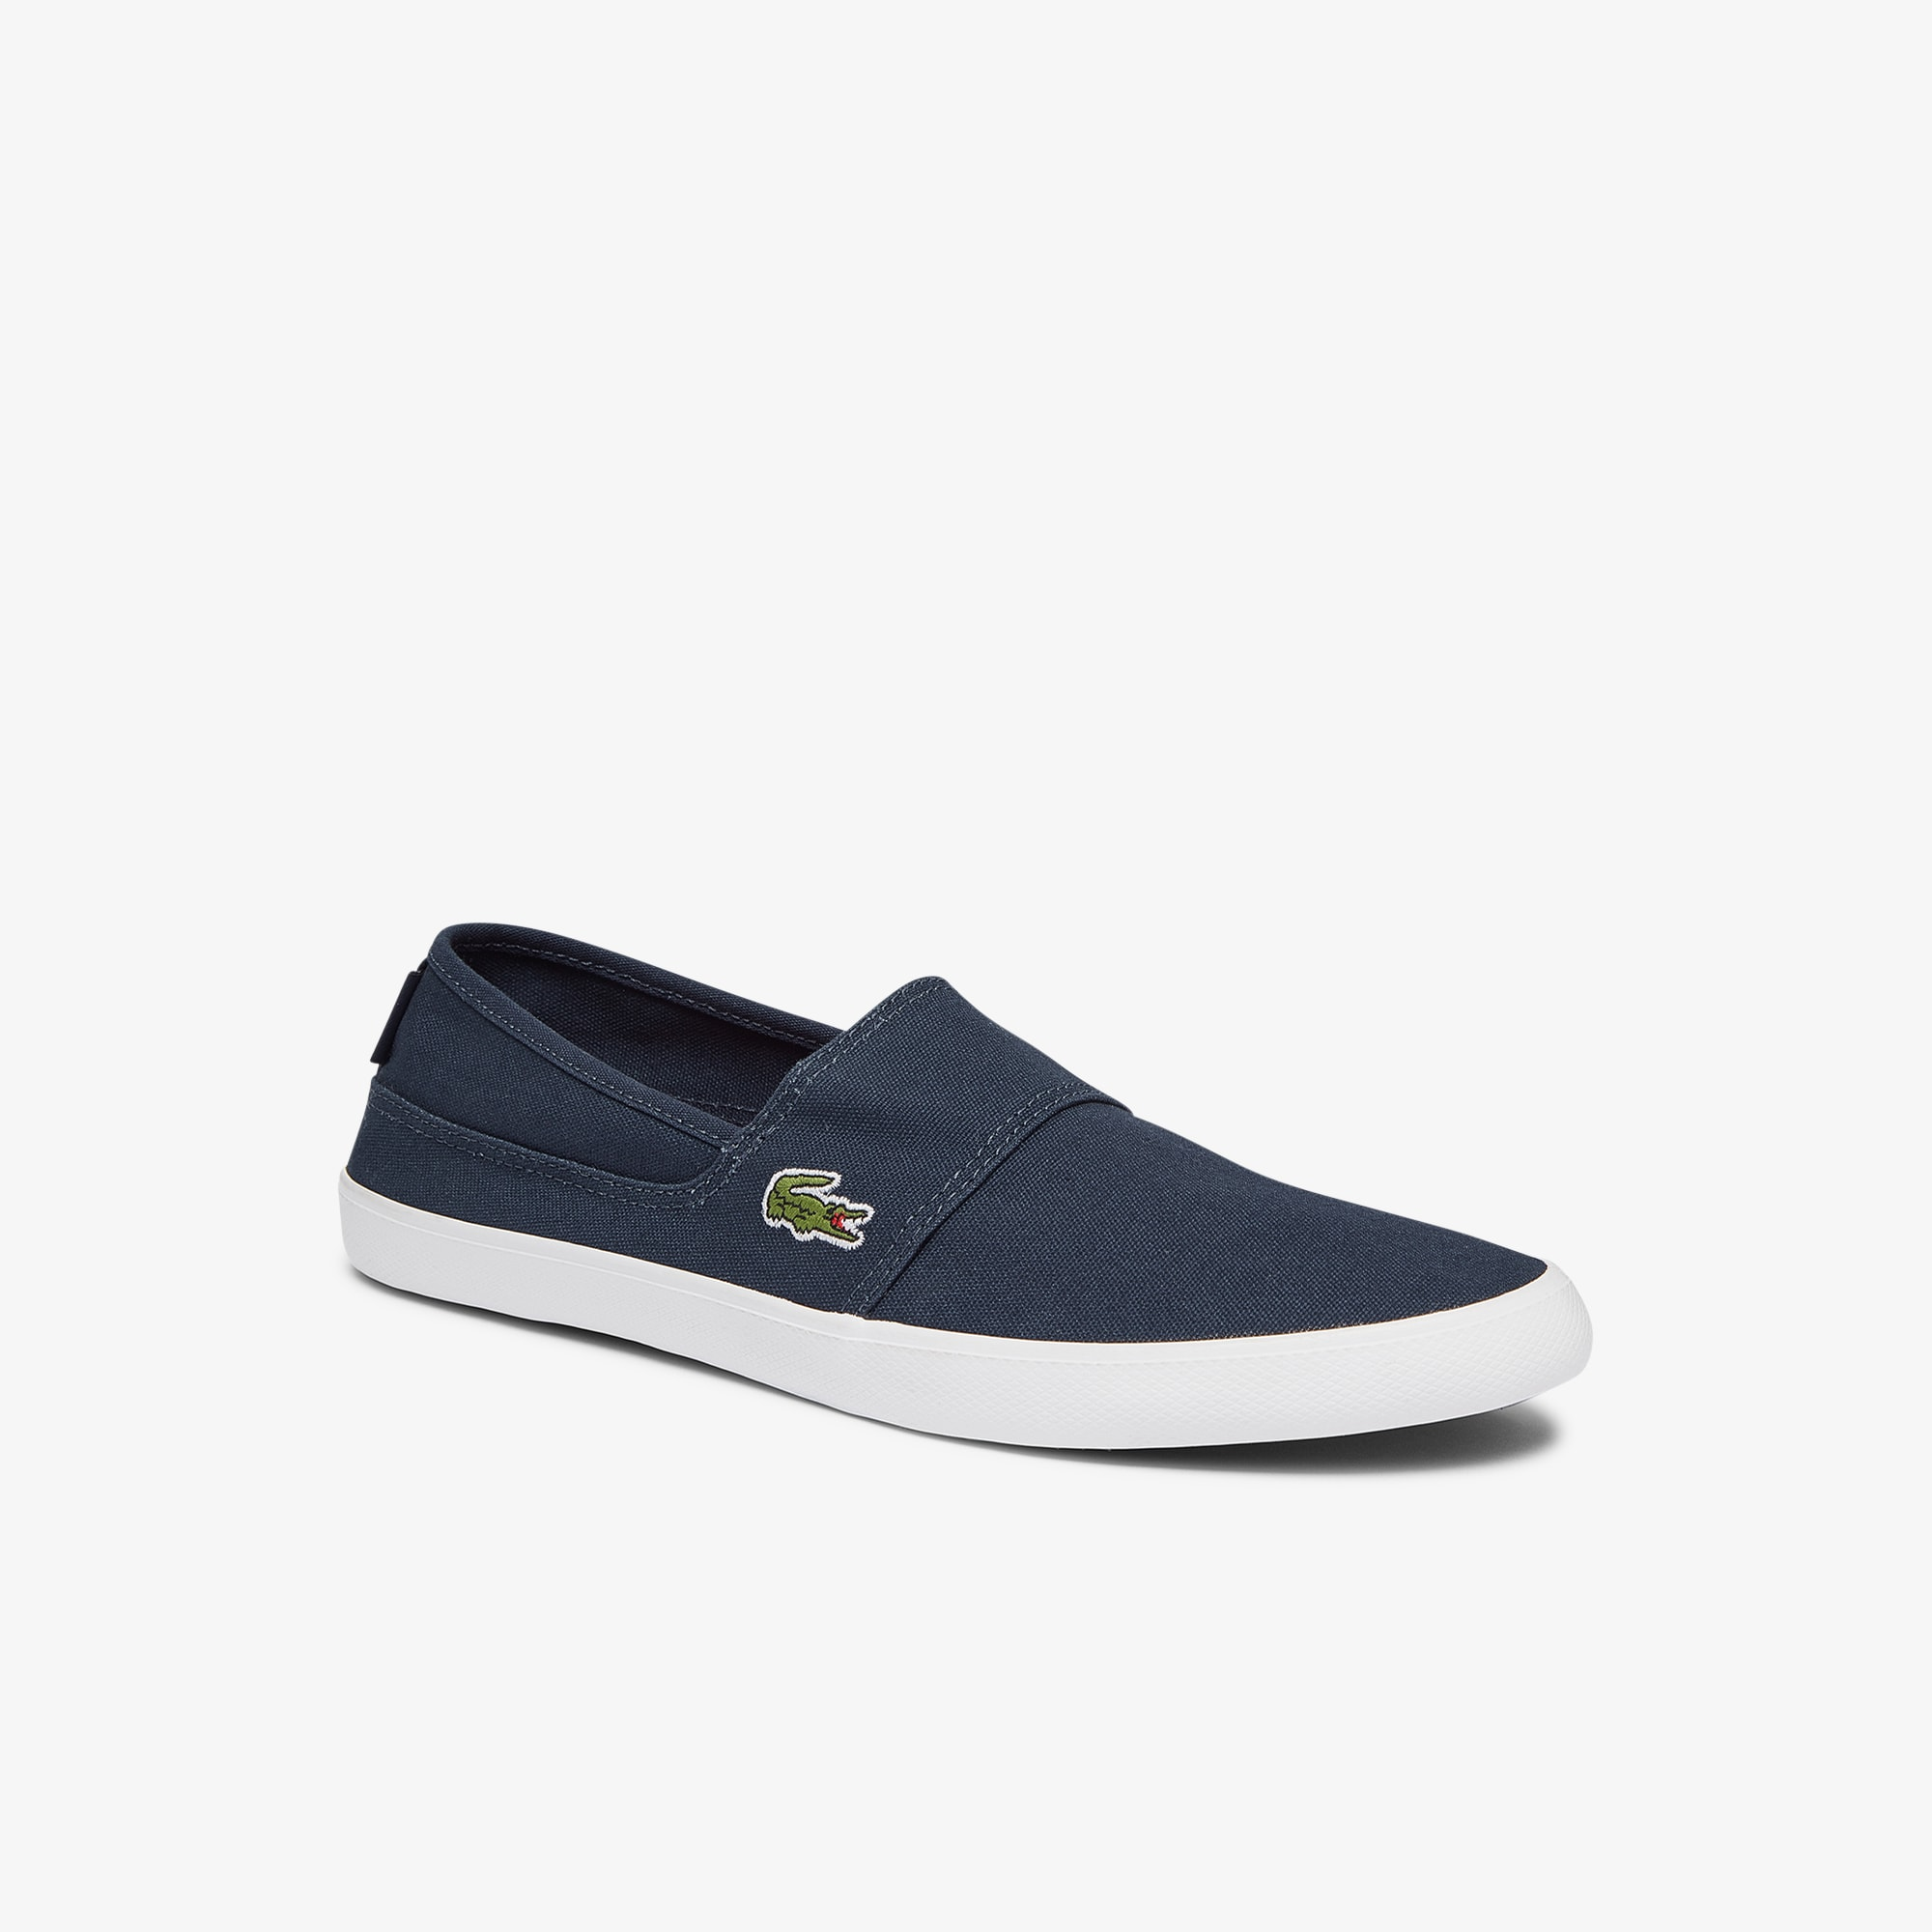 f797f52488e269 Polo shirts, shoes, leather goods | LACOSTE Online Boutique